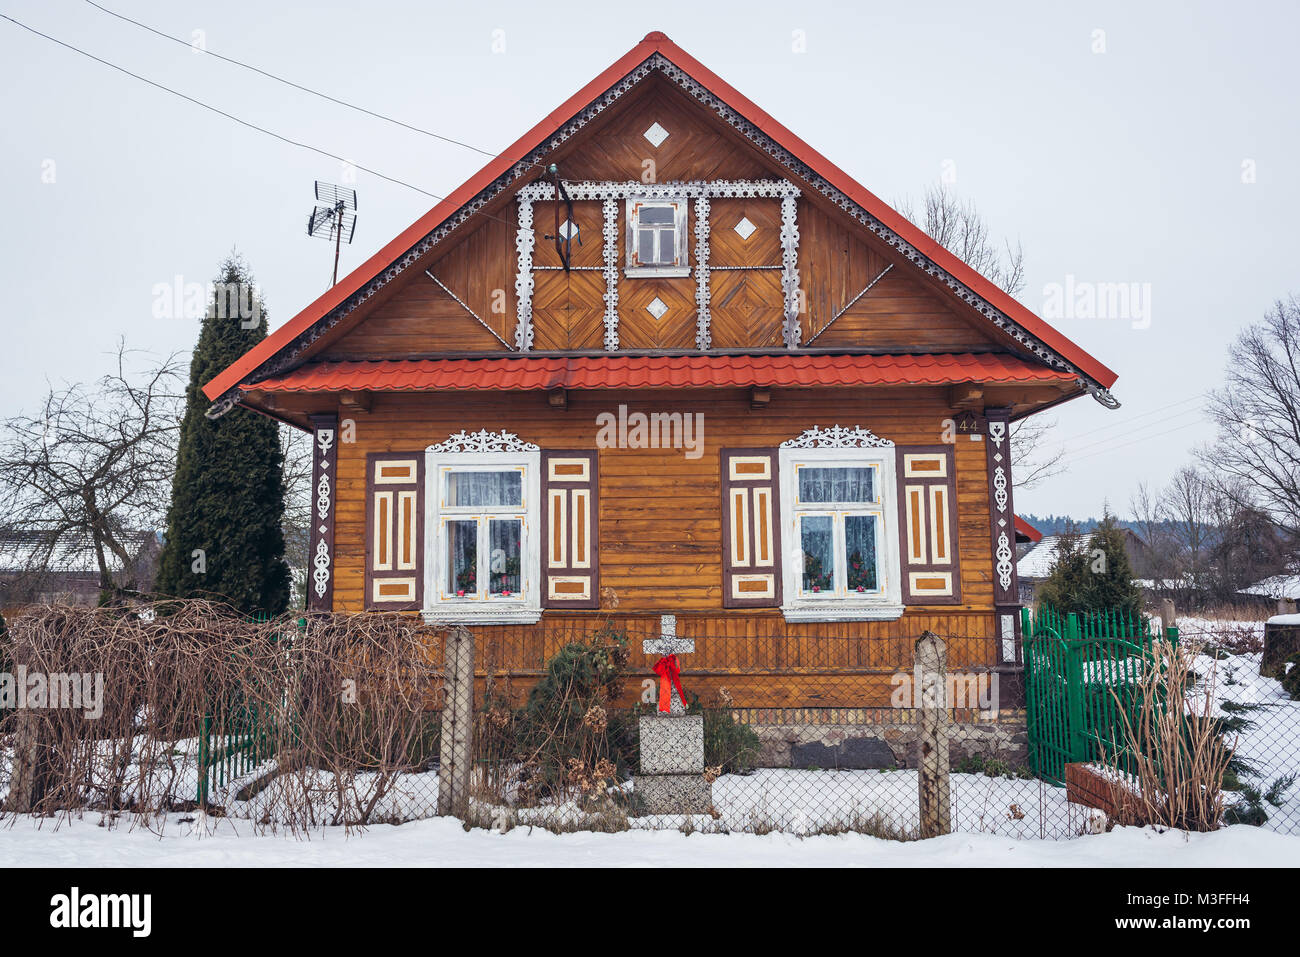 Wooden house in Soce village on so called The Land of Open Shutters trail, famous for traditional  architecture - Stock Image